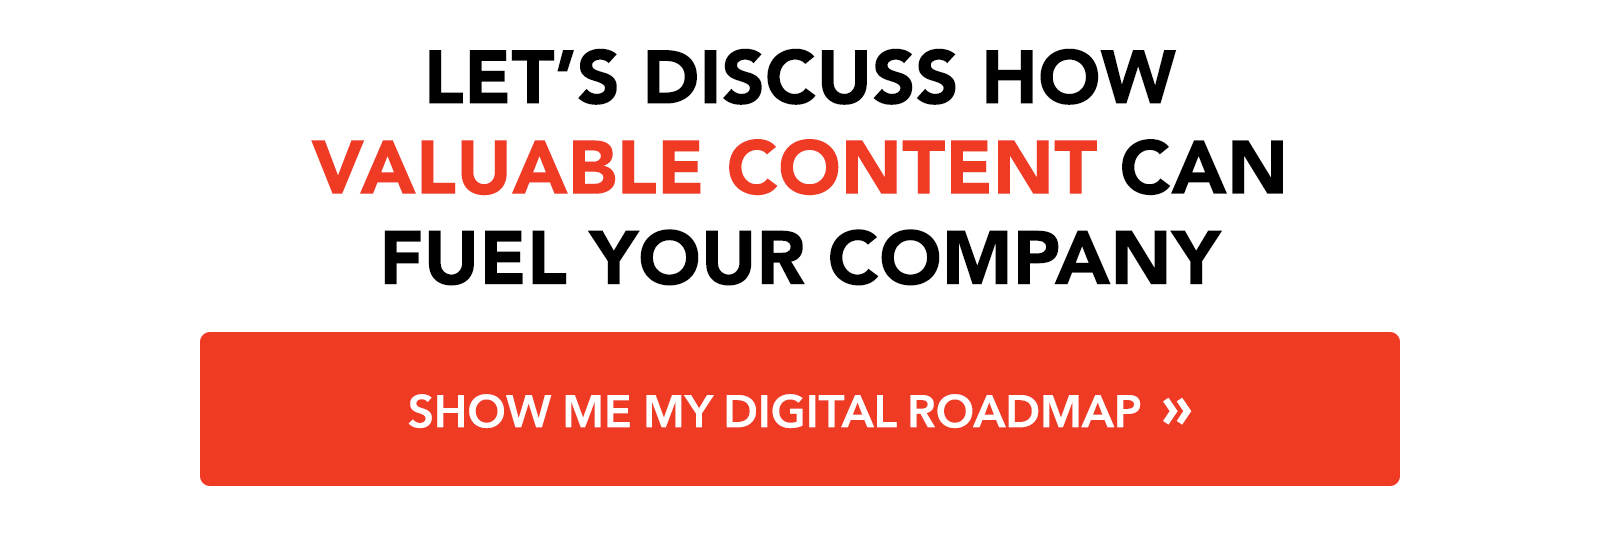 Let's discuss how valuable content can fuel your company: Show me my digital roadmap »